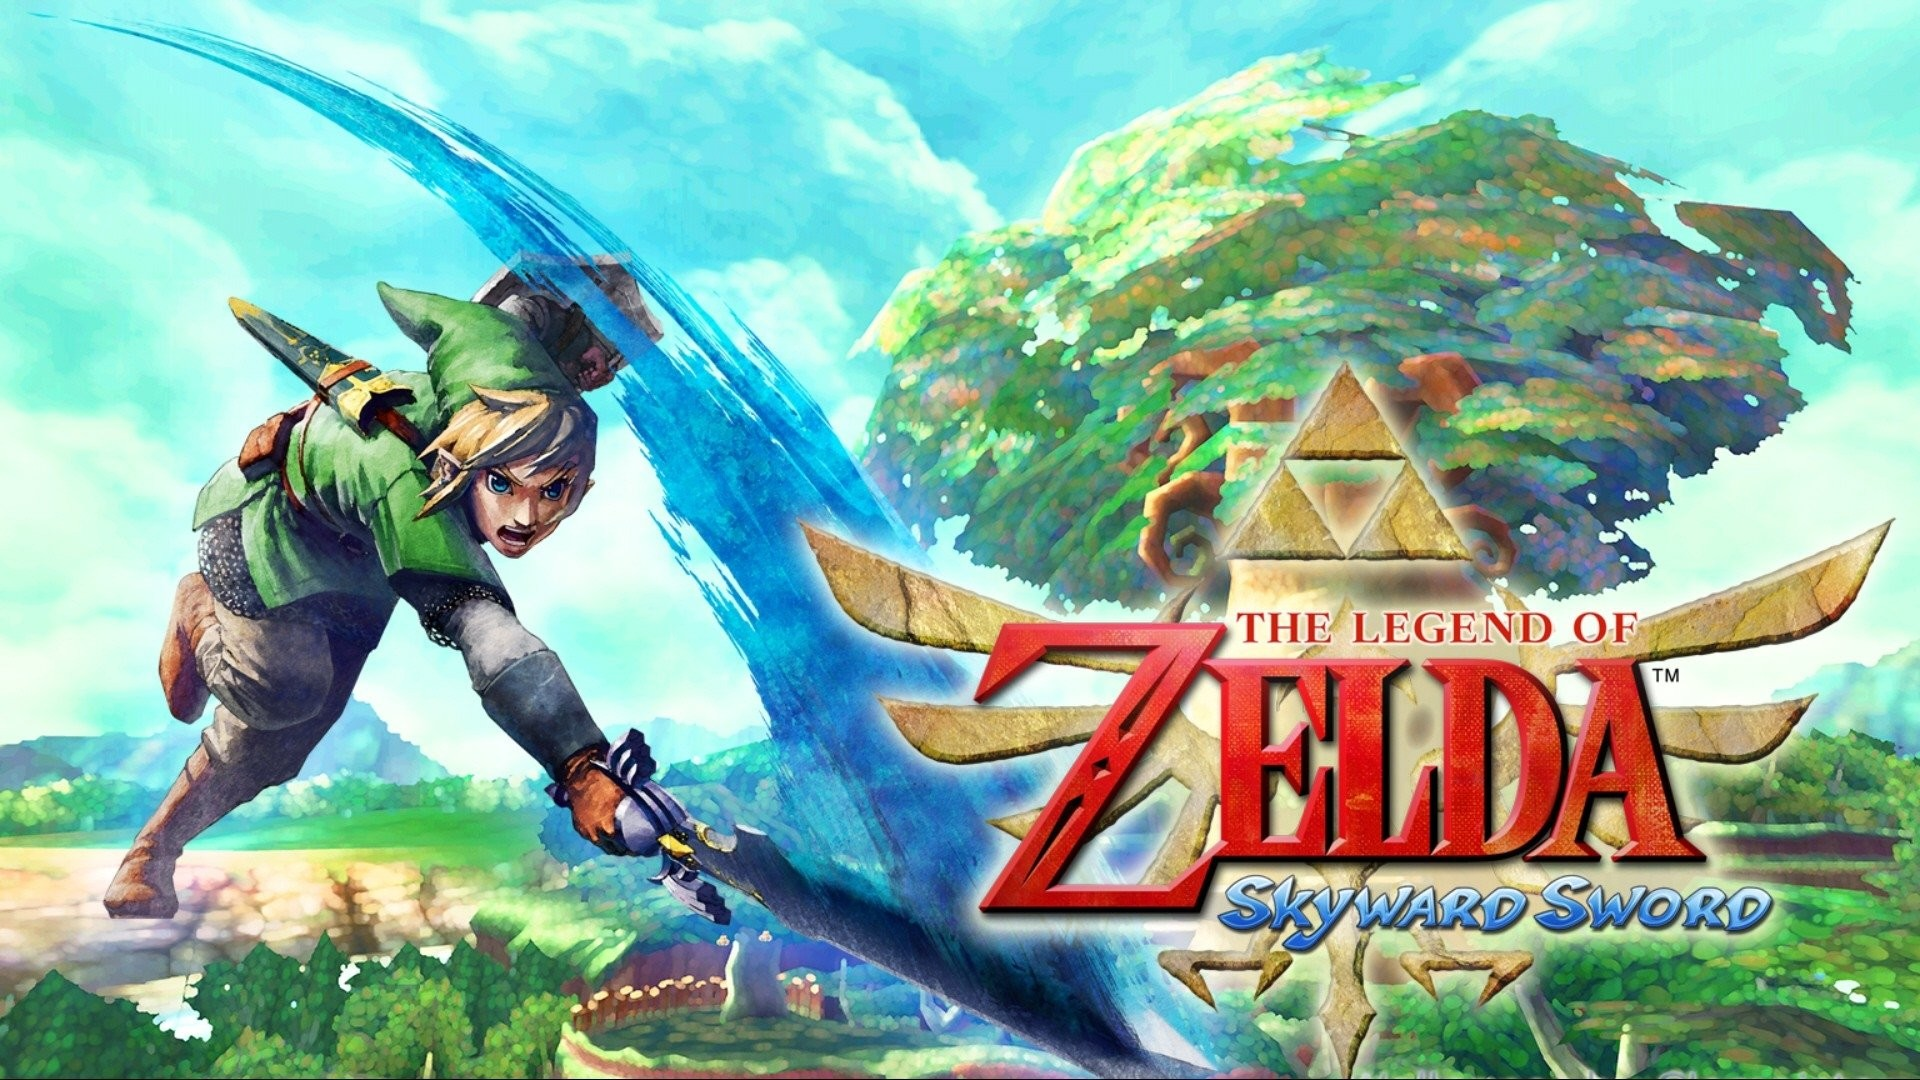 Zelda skyward sword wallpaper